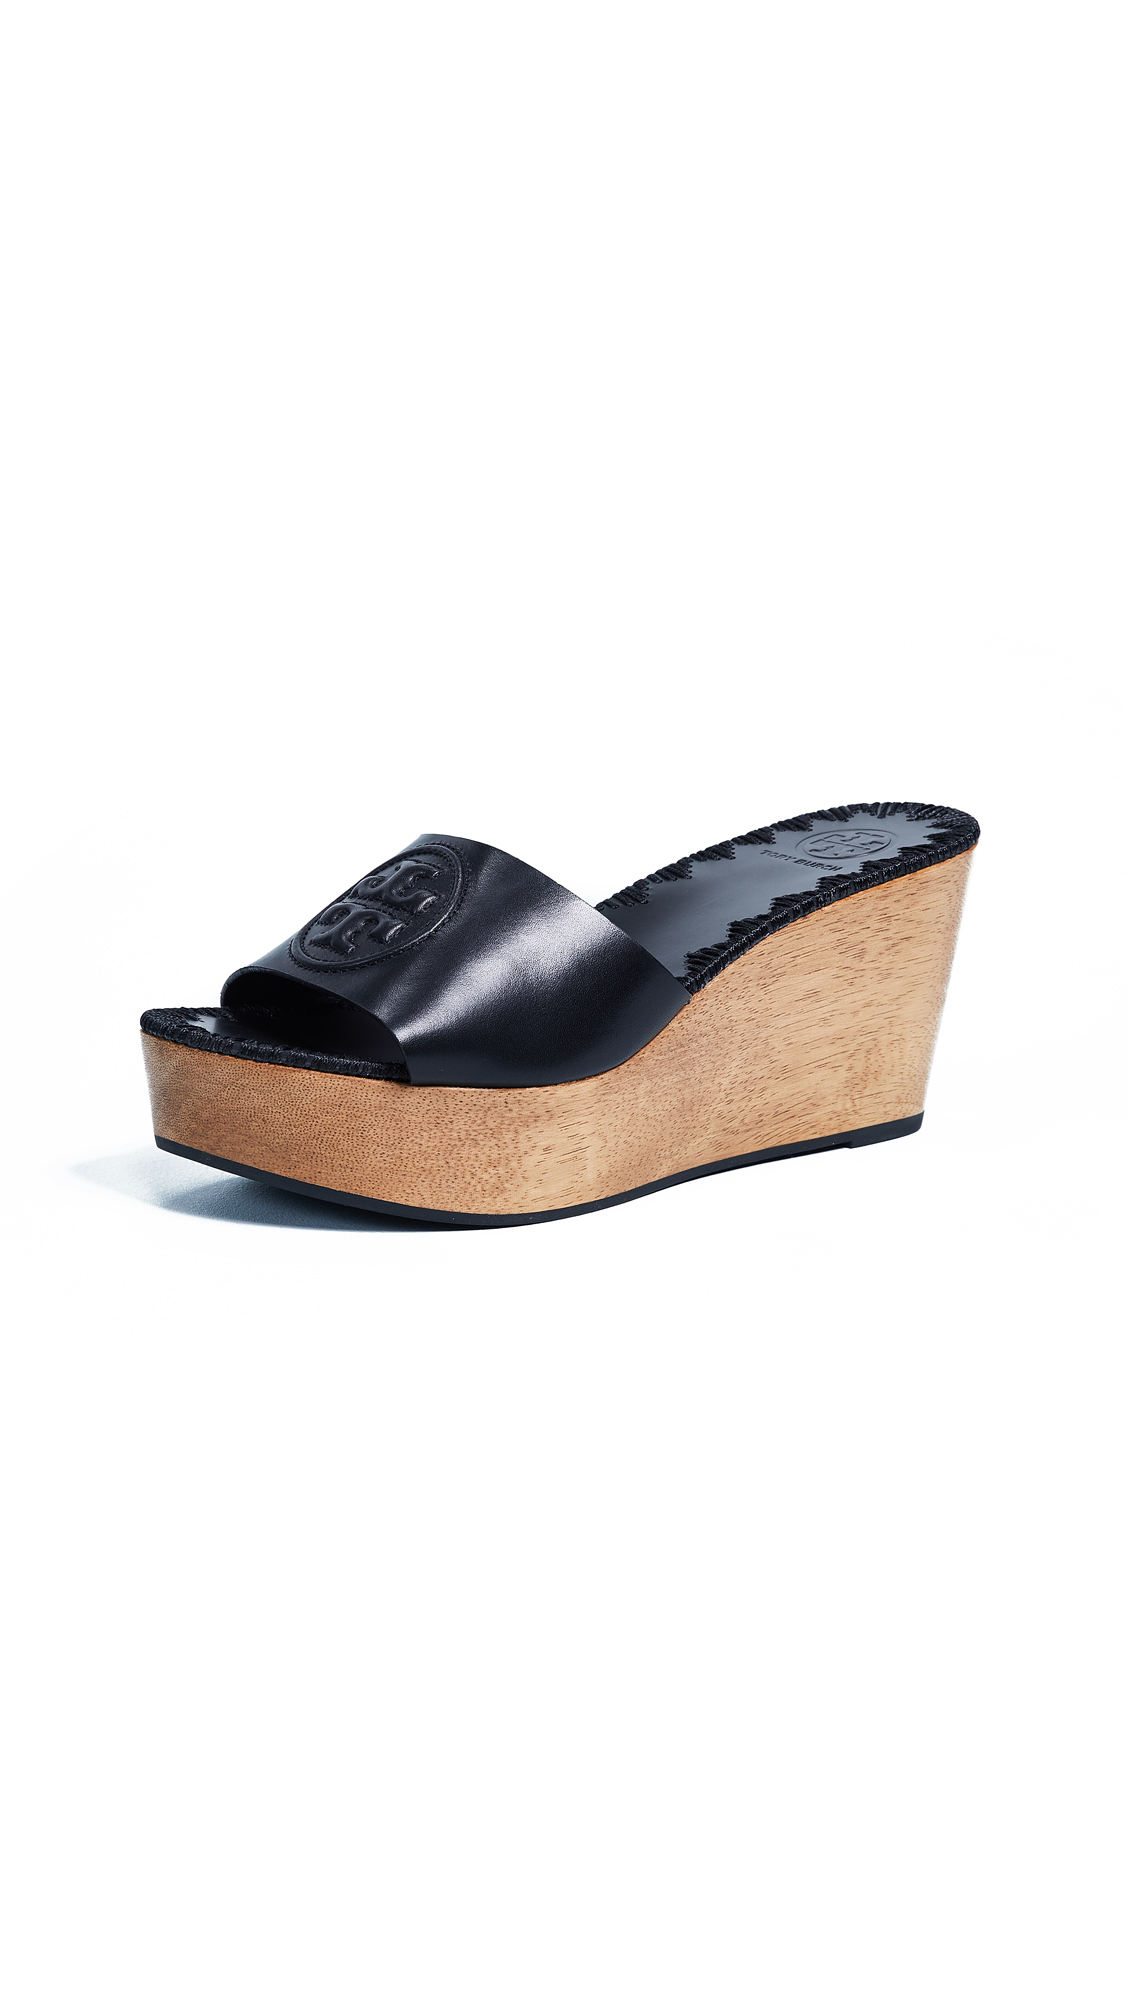 Tory Burch Patty 80mm Wedge Slide In Perfect Black